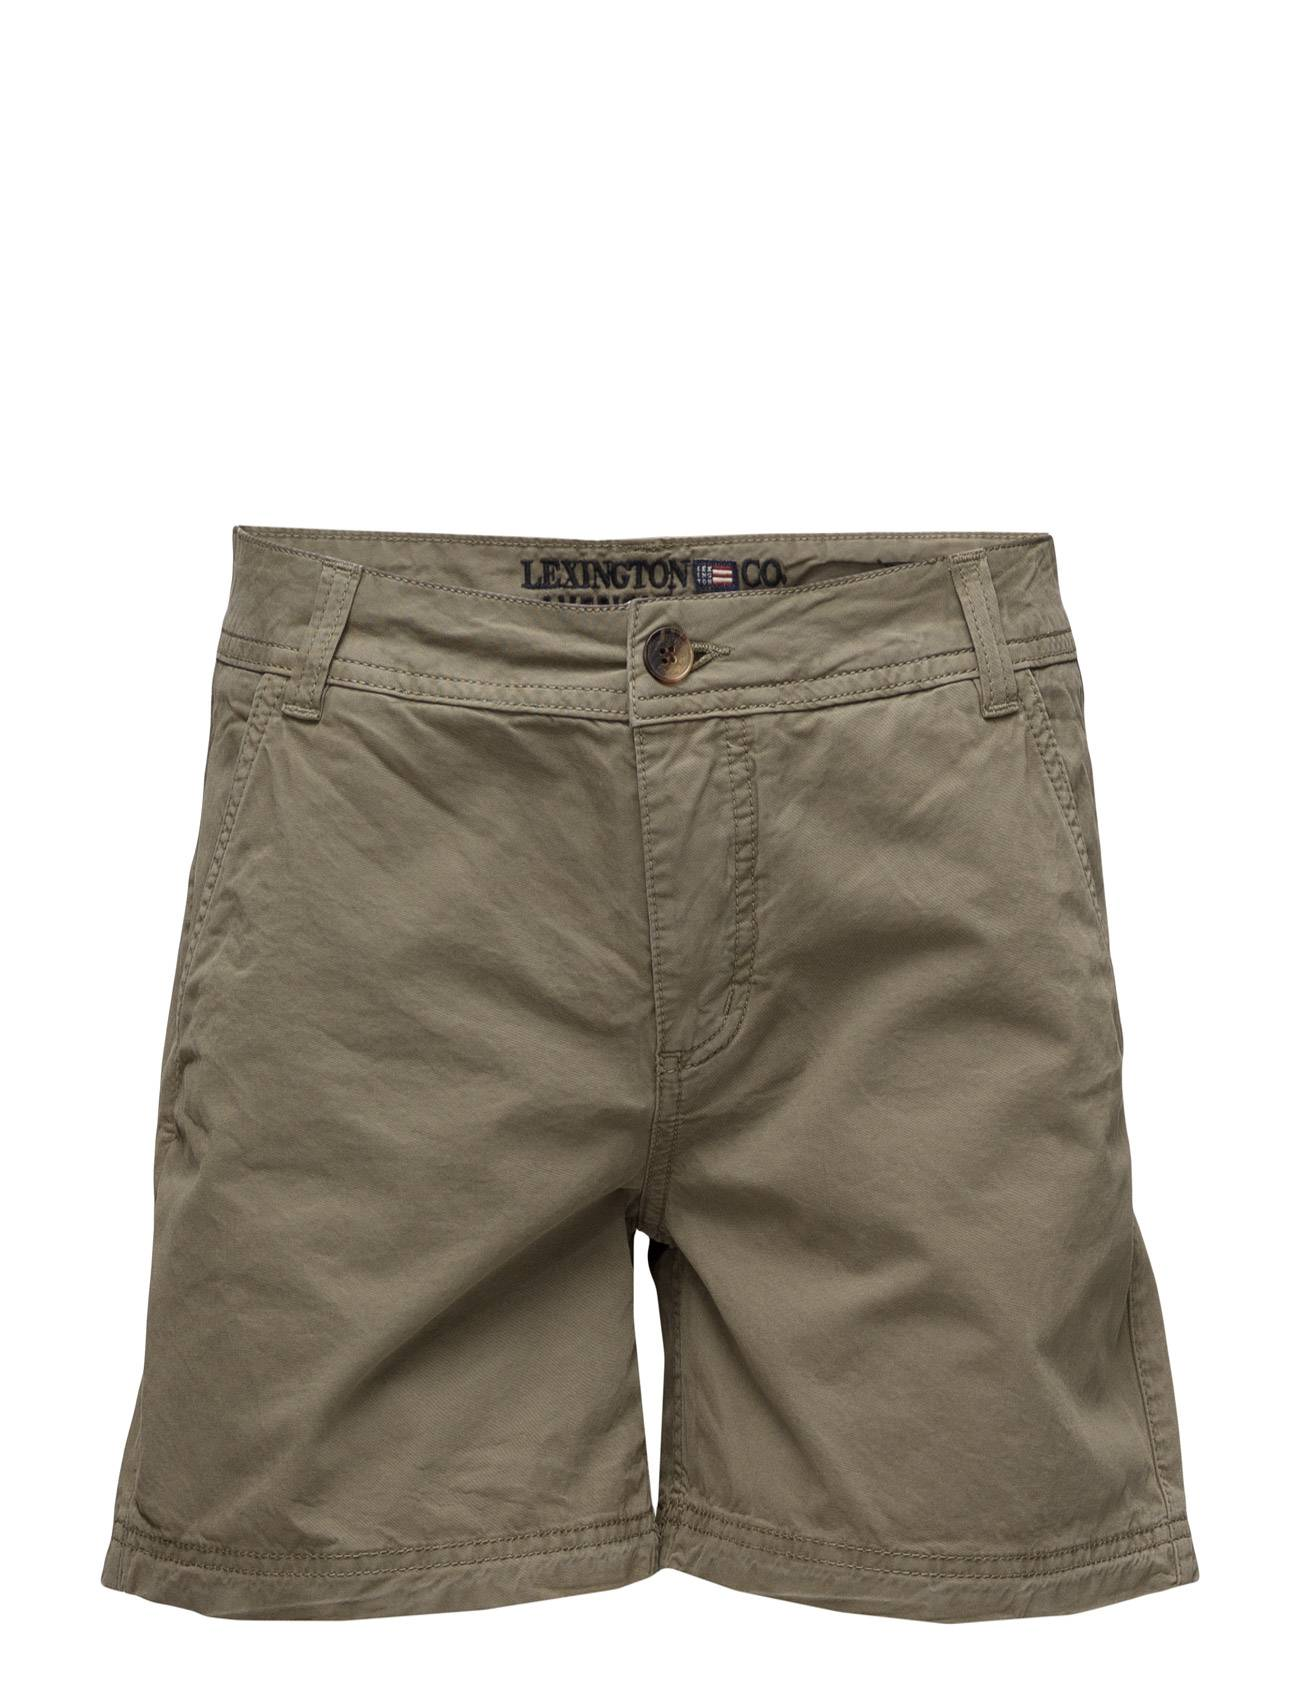 Lexington Company Gail Shorts